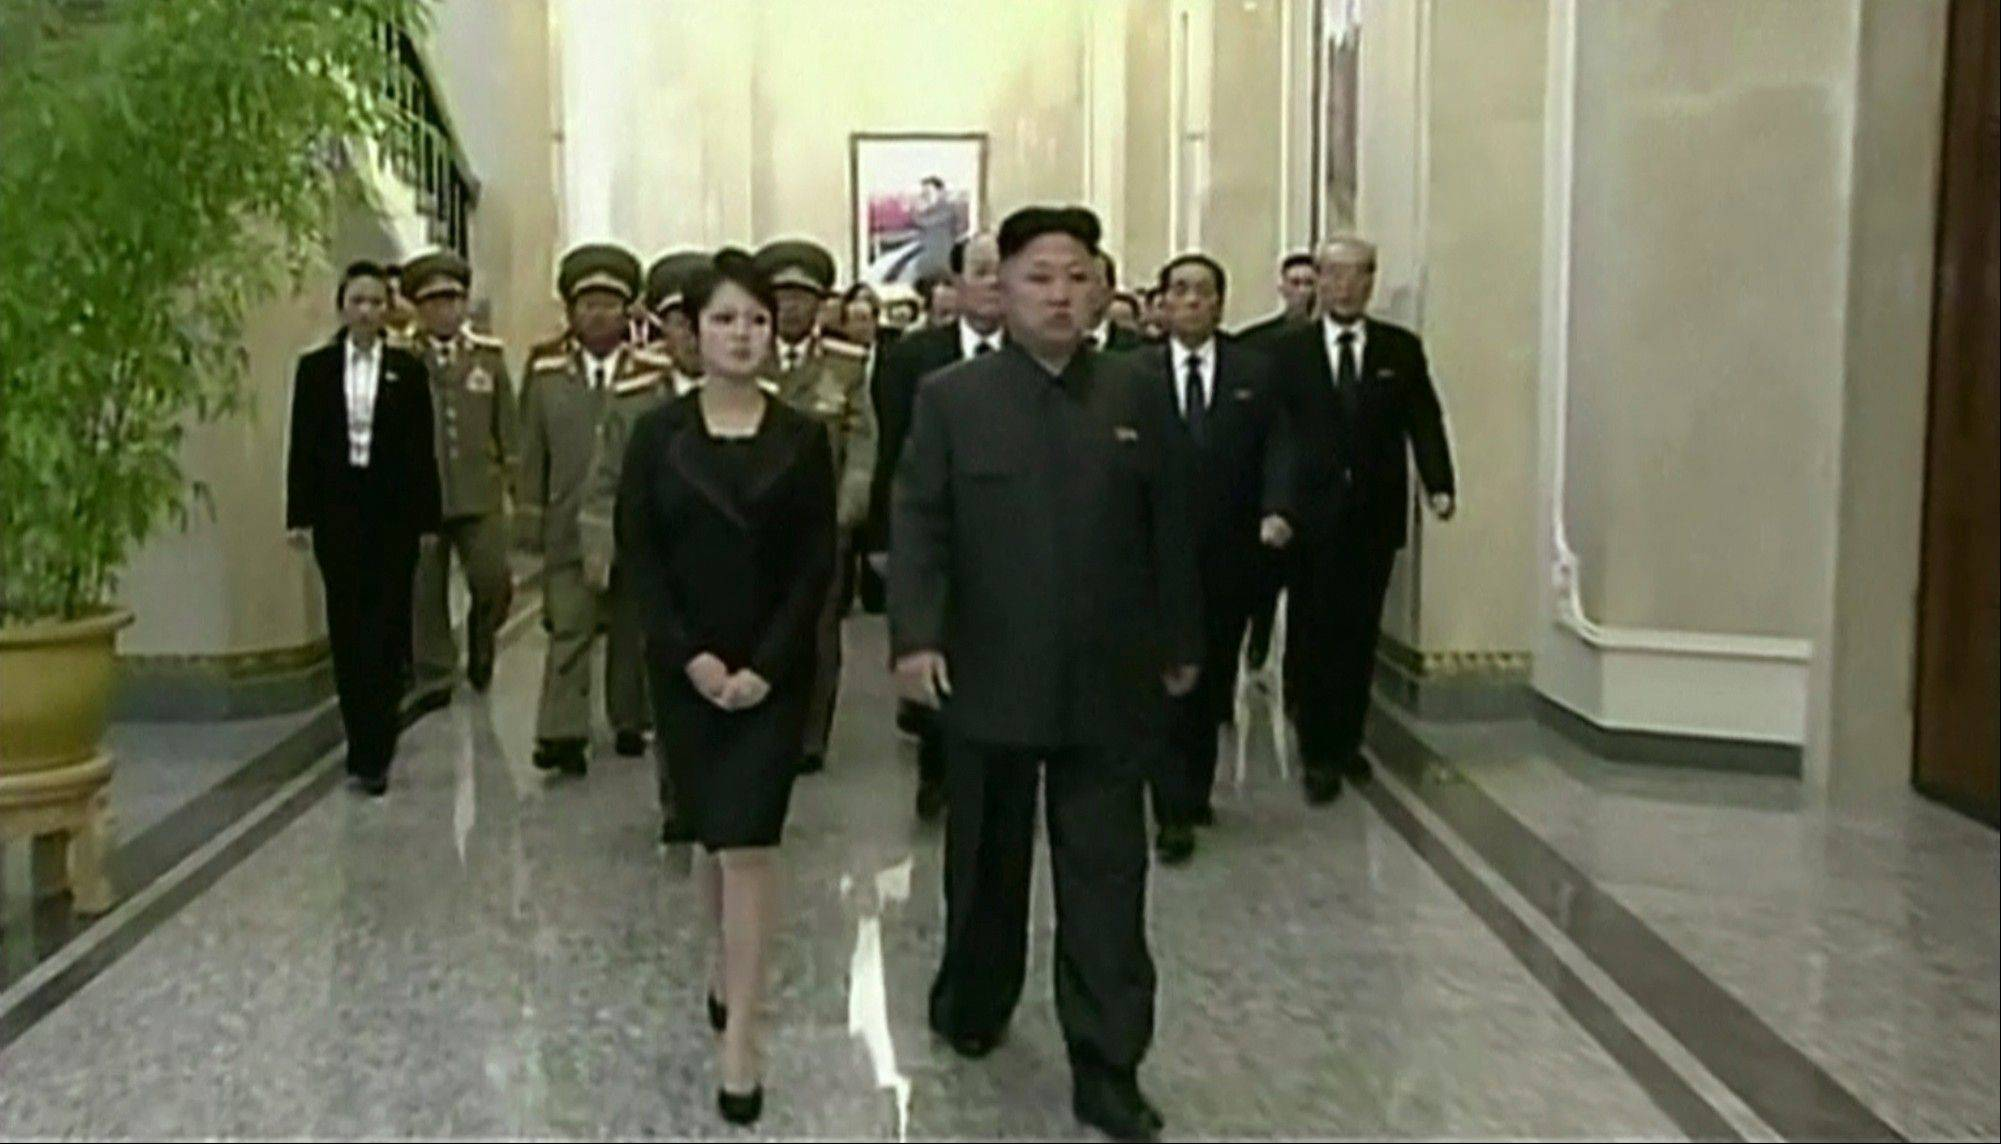 North Korean leader Kim Jong Un, center right, his wife, Ri Sol Ju, and high ranking officials walk as they visit the Kumsusan Palace of the Sun on the second anniversary of the death of his father, former leader Kim Jong Il.